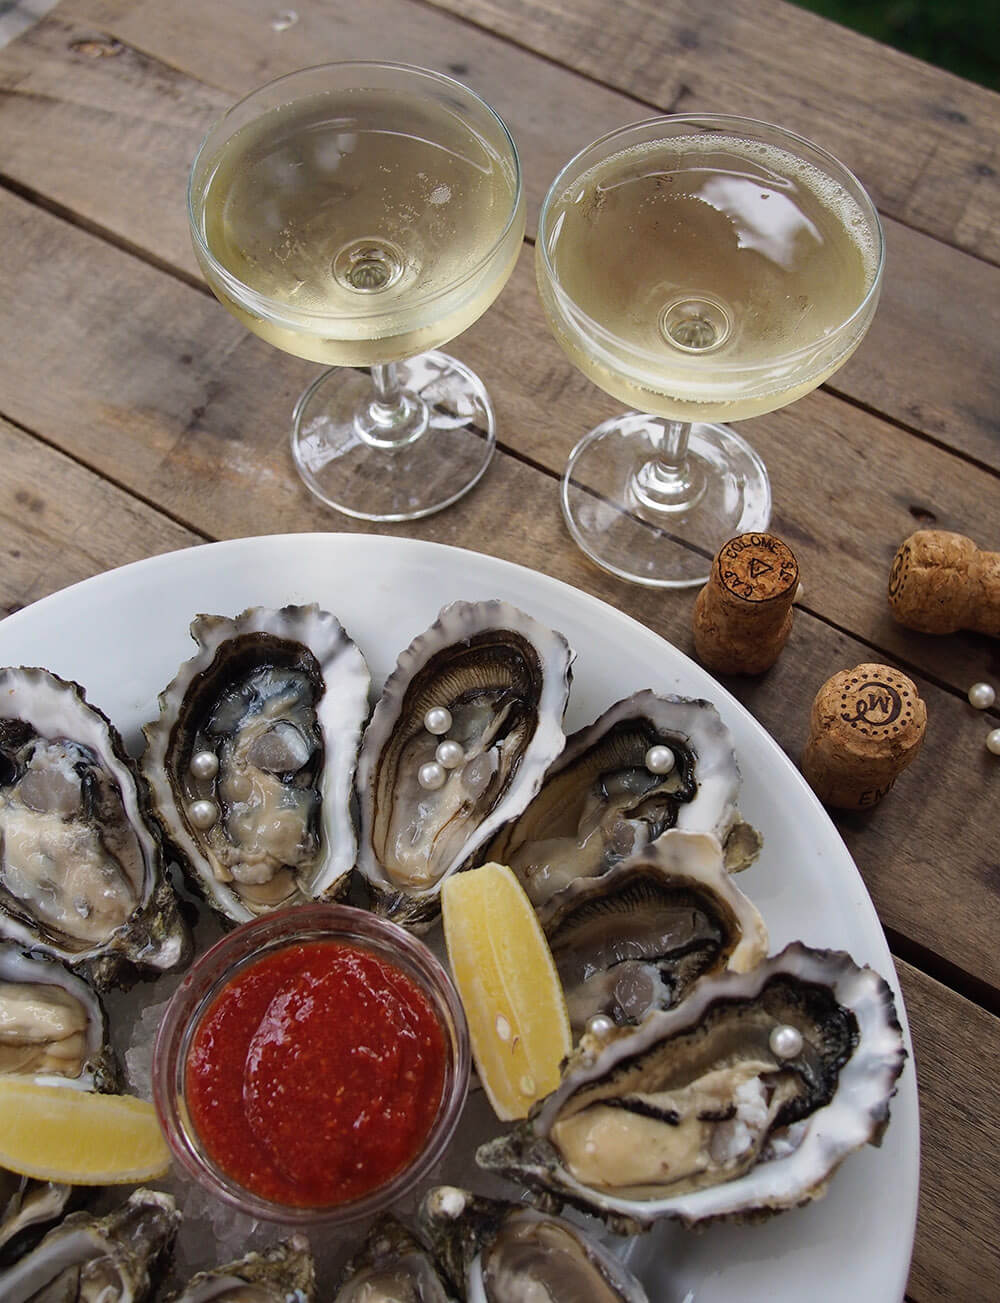 Every Tuesdasy we host a special promo-event. Oyster's night. You can enjoy a special promo-price for 12 oysters - 20$++